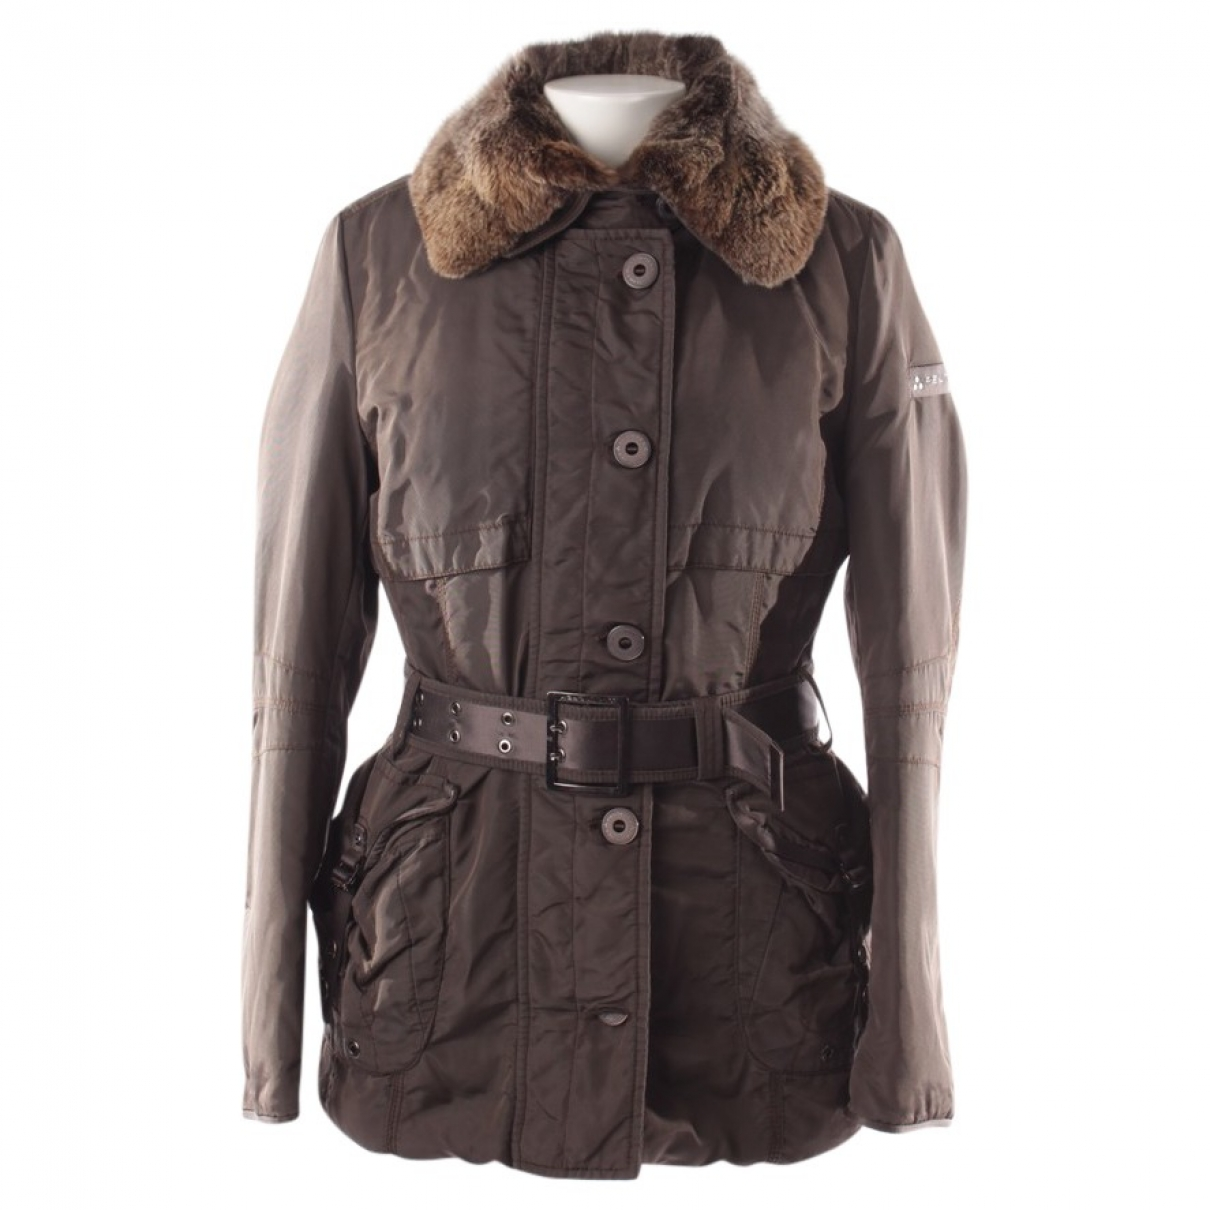 Peuterey \N Brown jacket for Women 36 FR